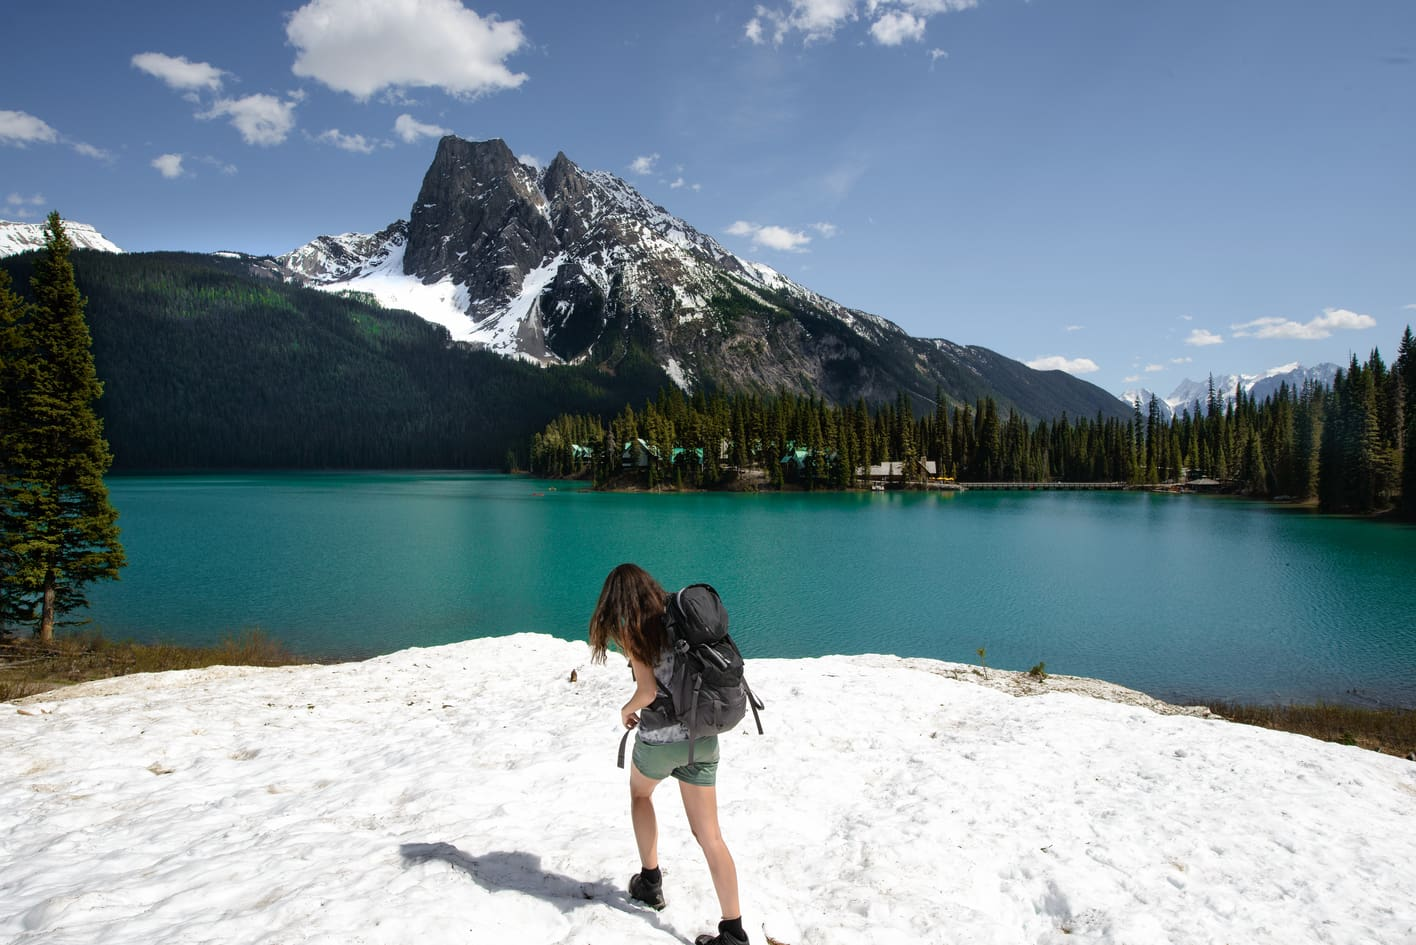 emerald lake in a day for backpackers canada yoho